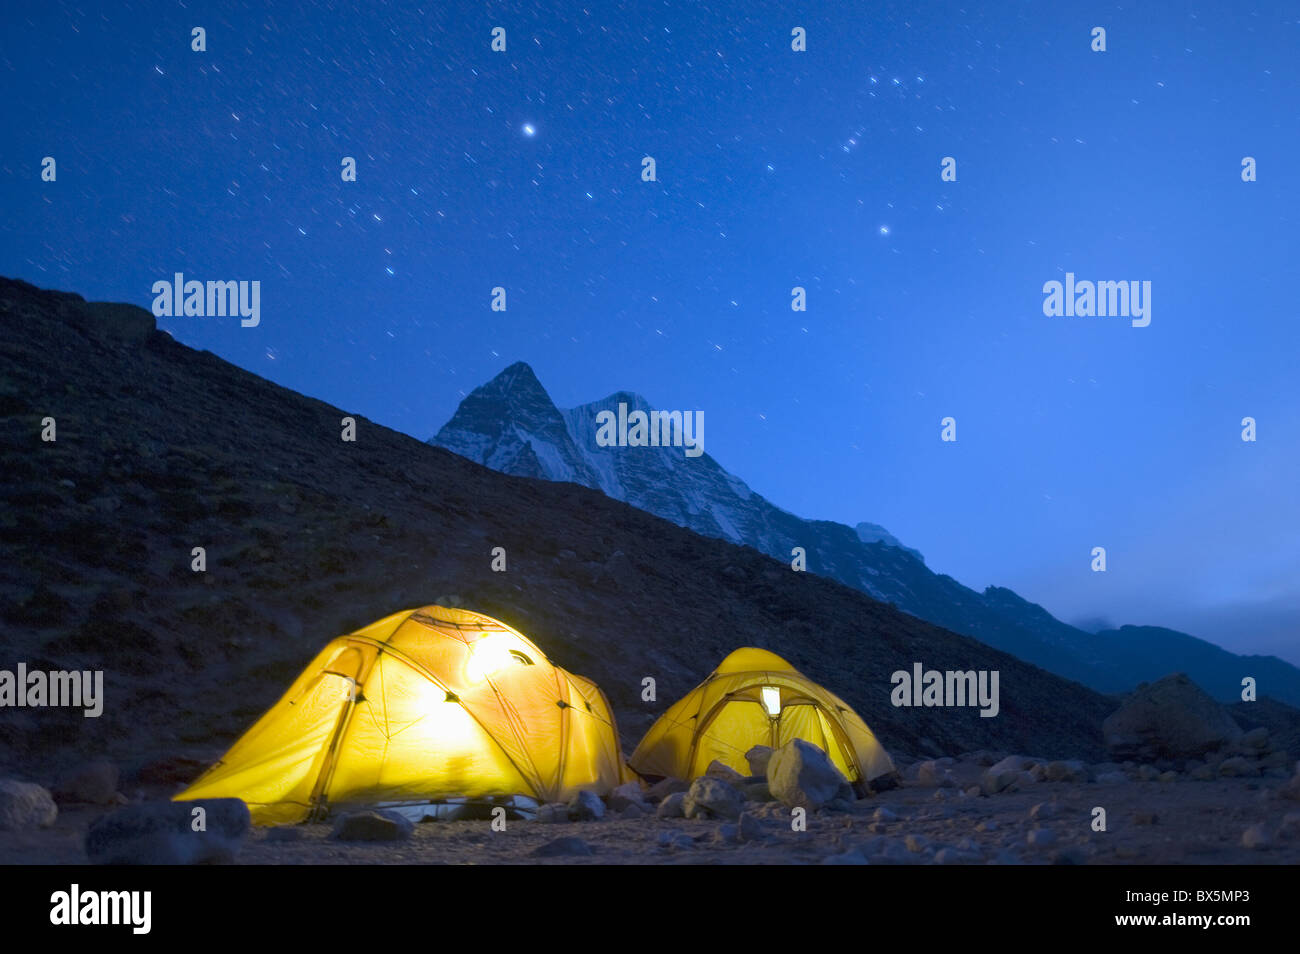 Illuminated tents at Island Peak Base Camp, Solu Khumbu Everest Region, Sagarmatha National Park, Himalayas, Nepal, - Stock Image